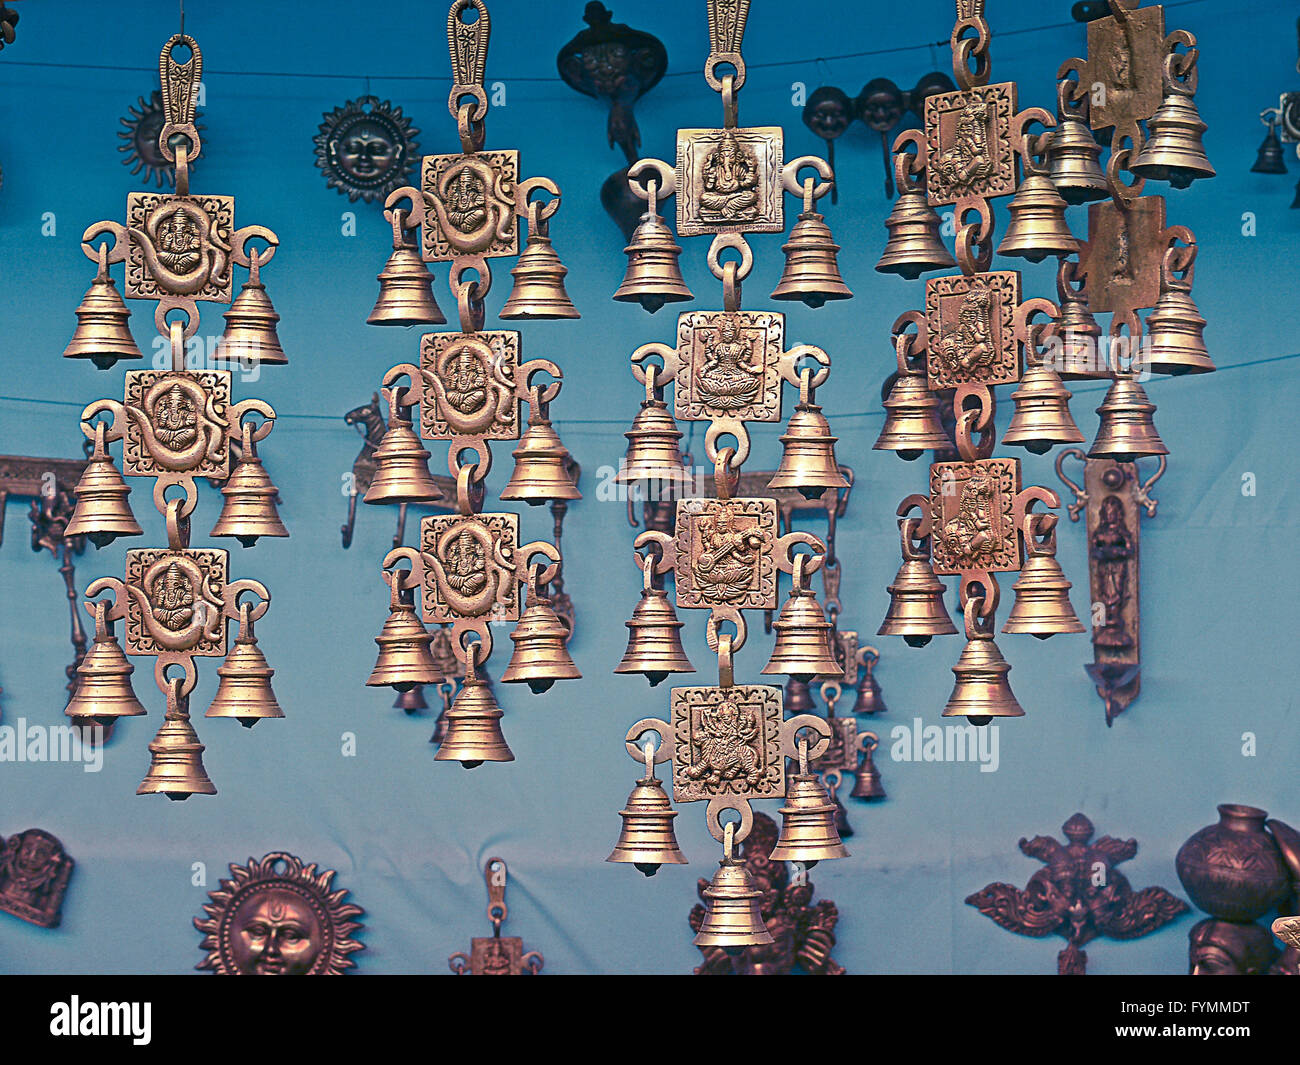 Brass made hanging showpieces with bells - Stock Image